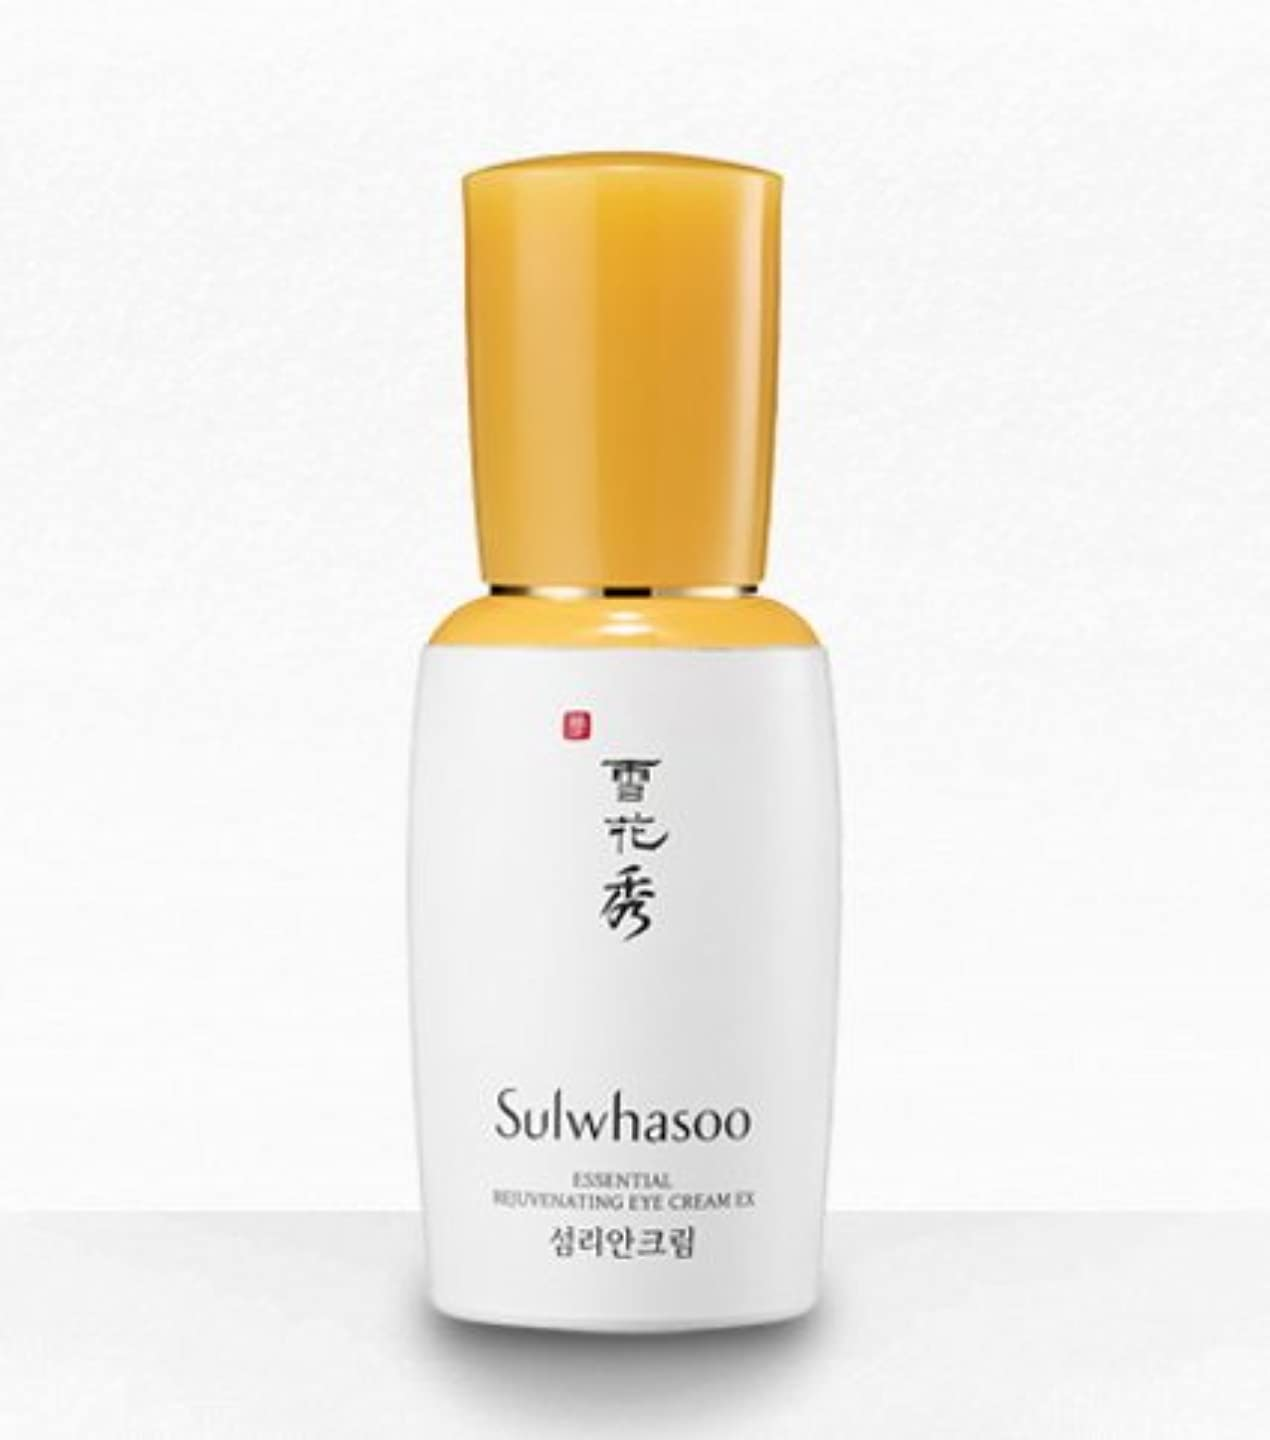 カルシウム高い始めるRejuvenating Eye Cream - Sulwhasoo - Eye Care - 25ml/0.8oz[並行輸入品]